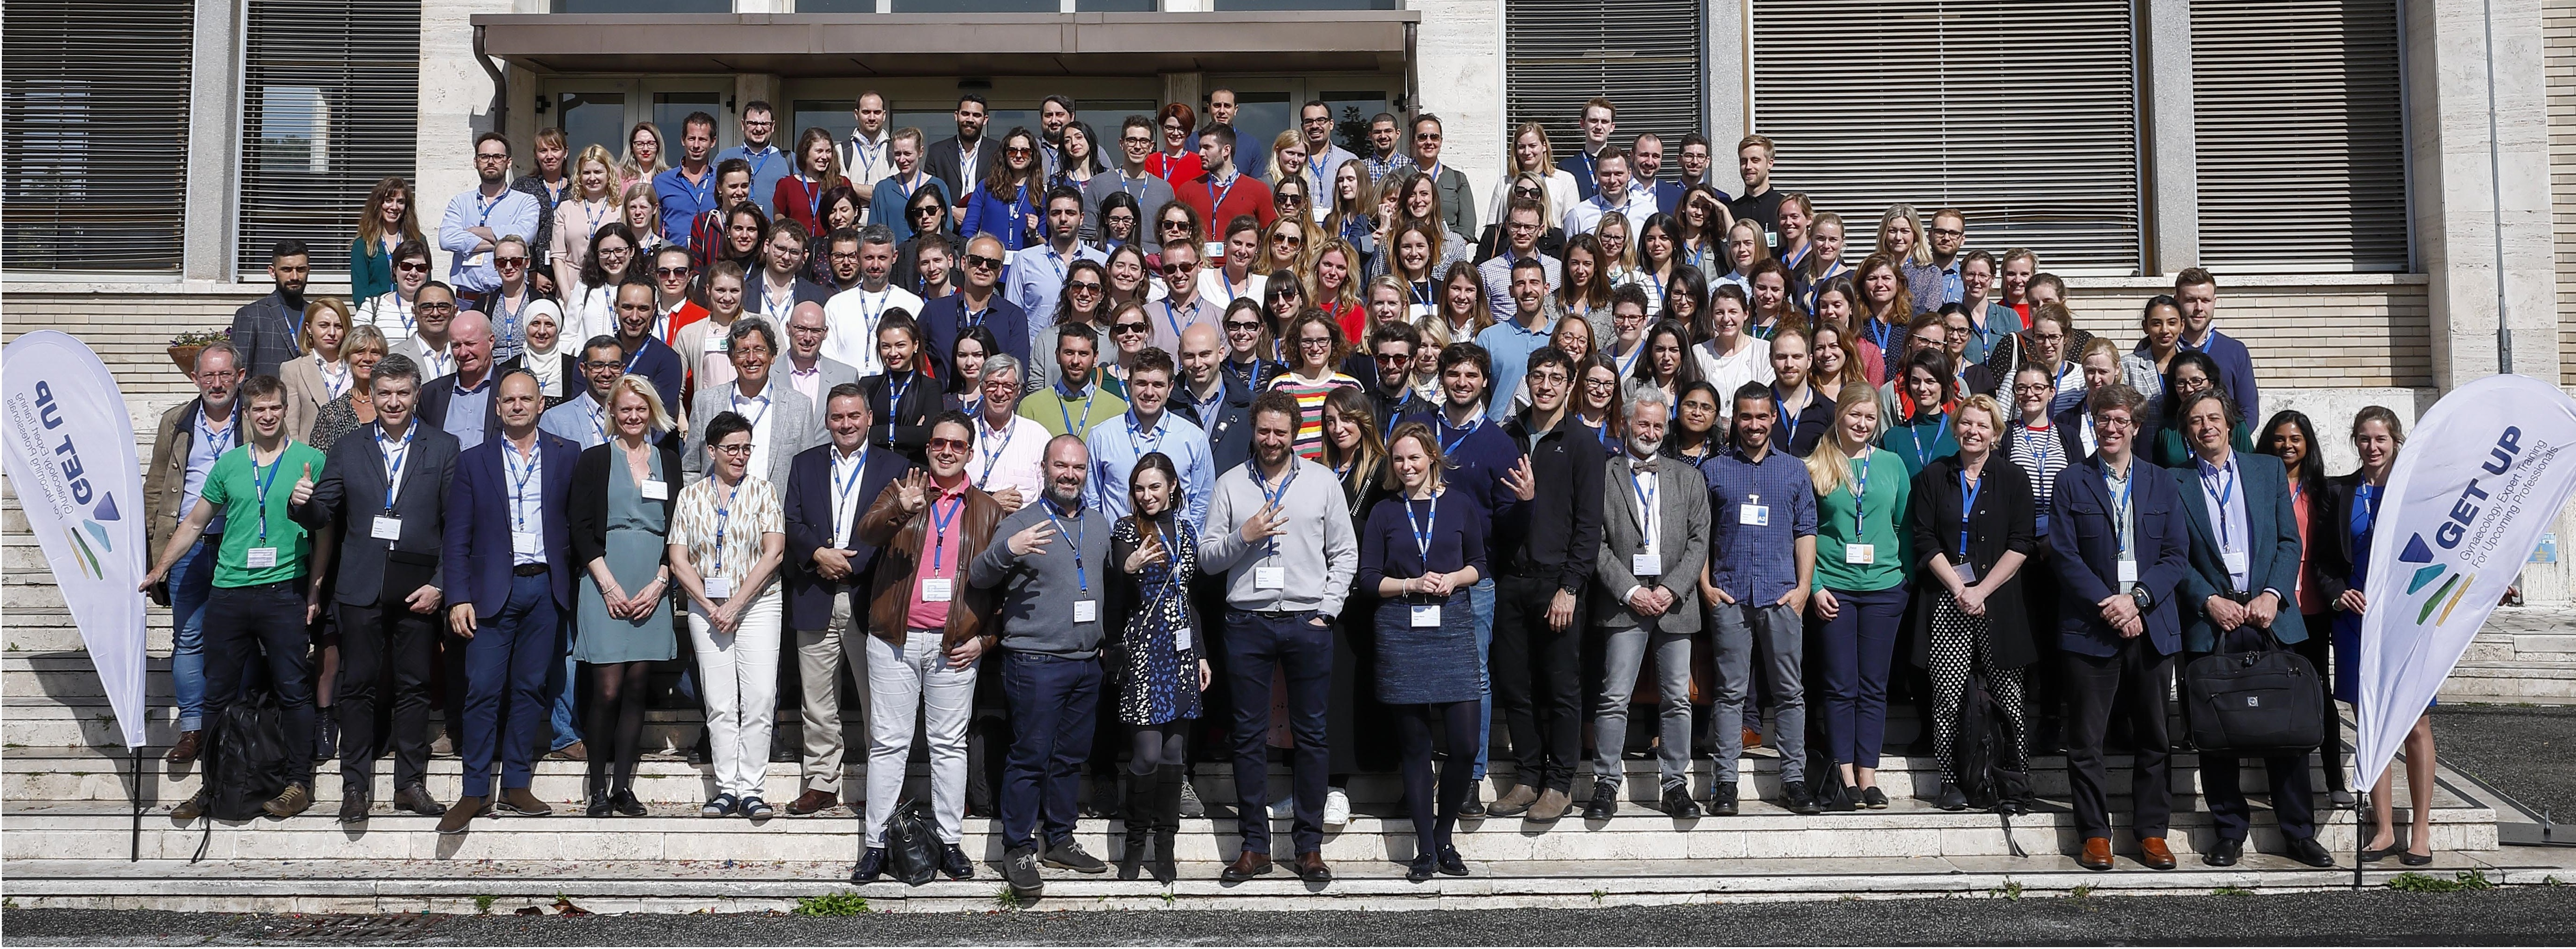 The fourth GET UP was held 10-13 April 2019 in Rome